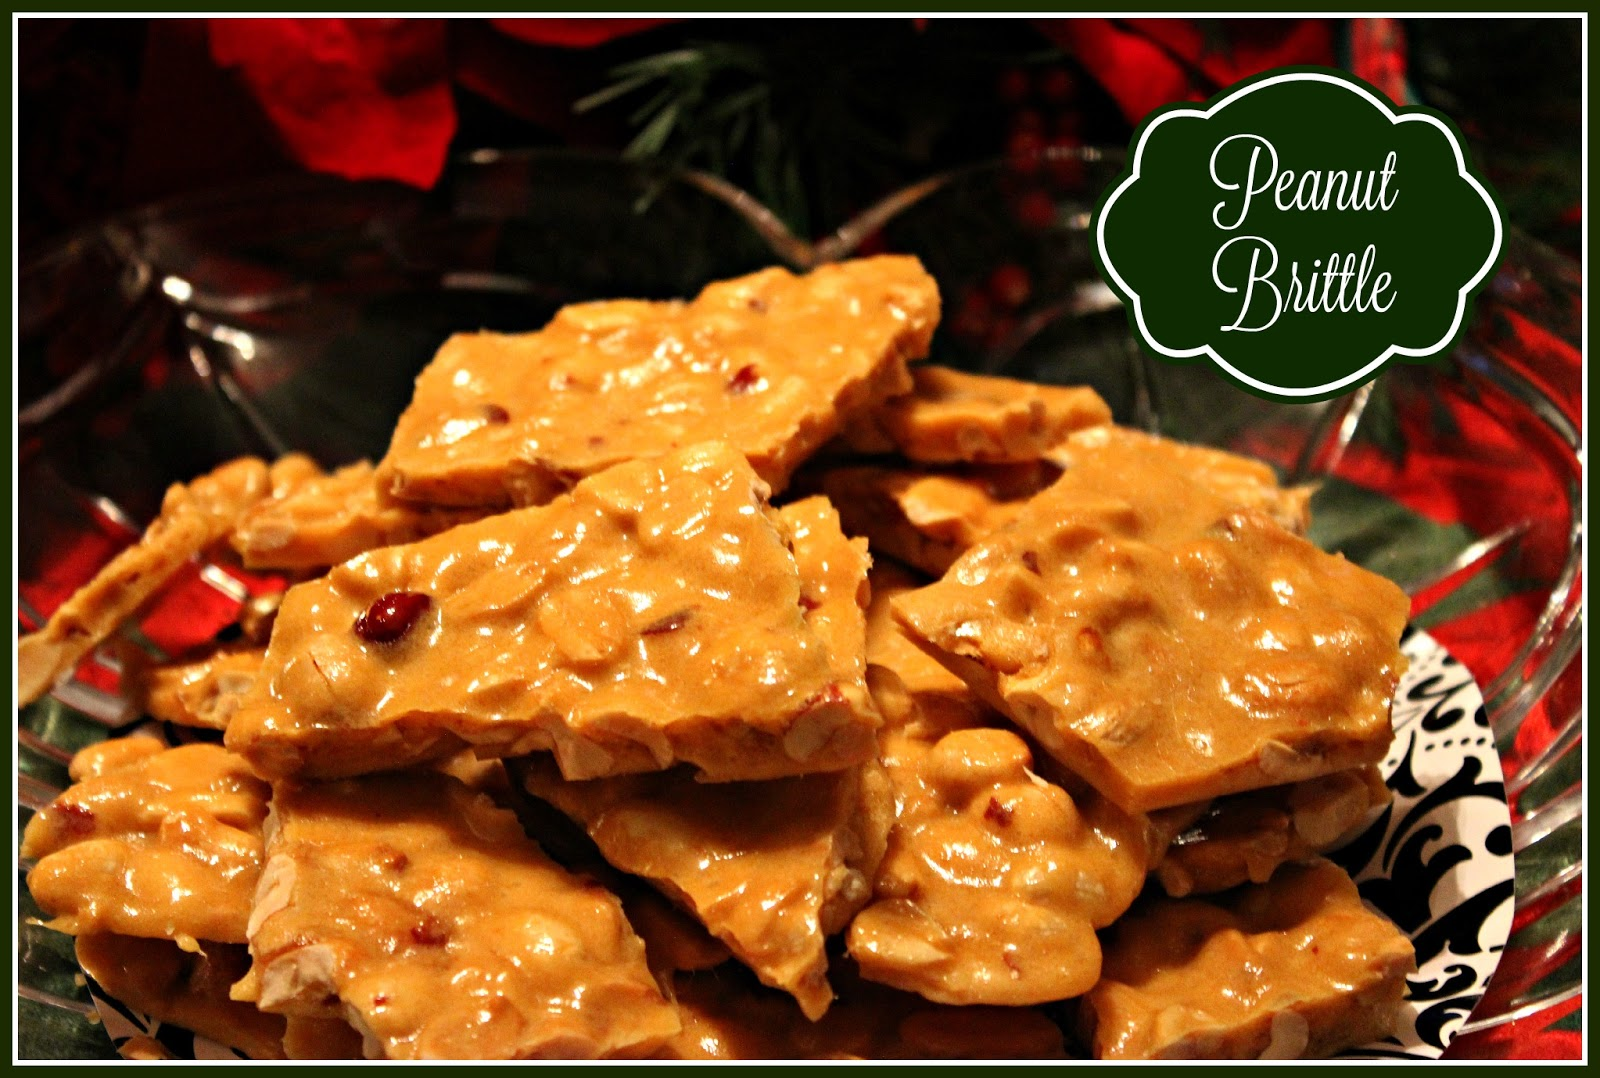 love good peanut brittle but really good peanut brittle can be hard ...